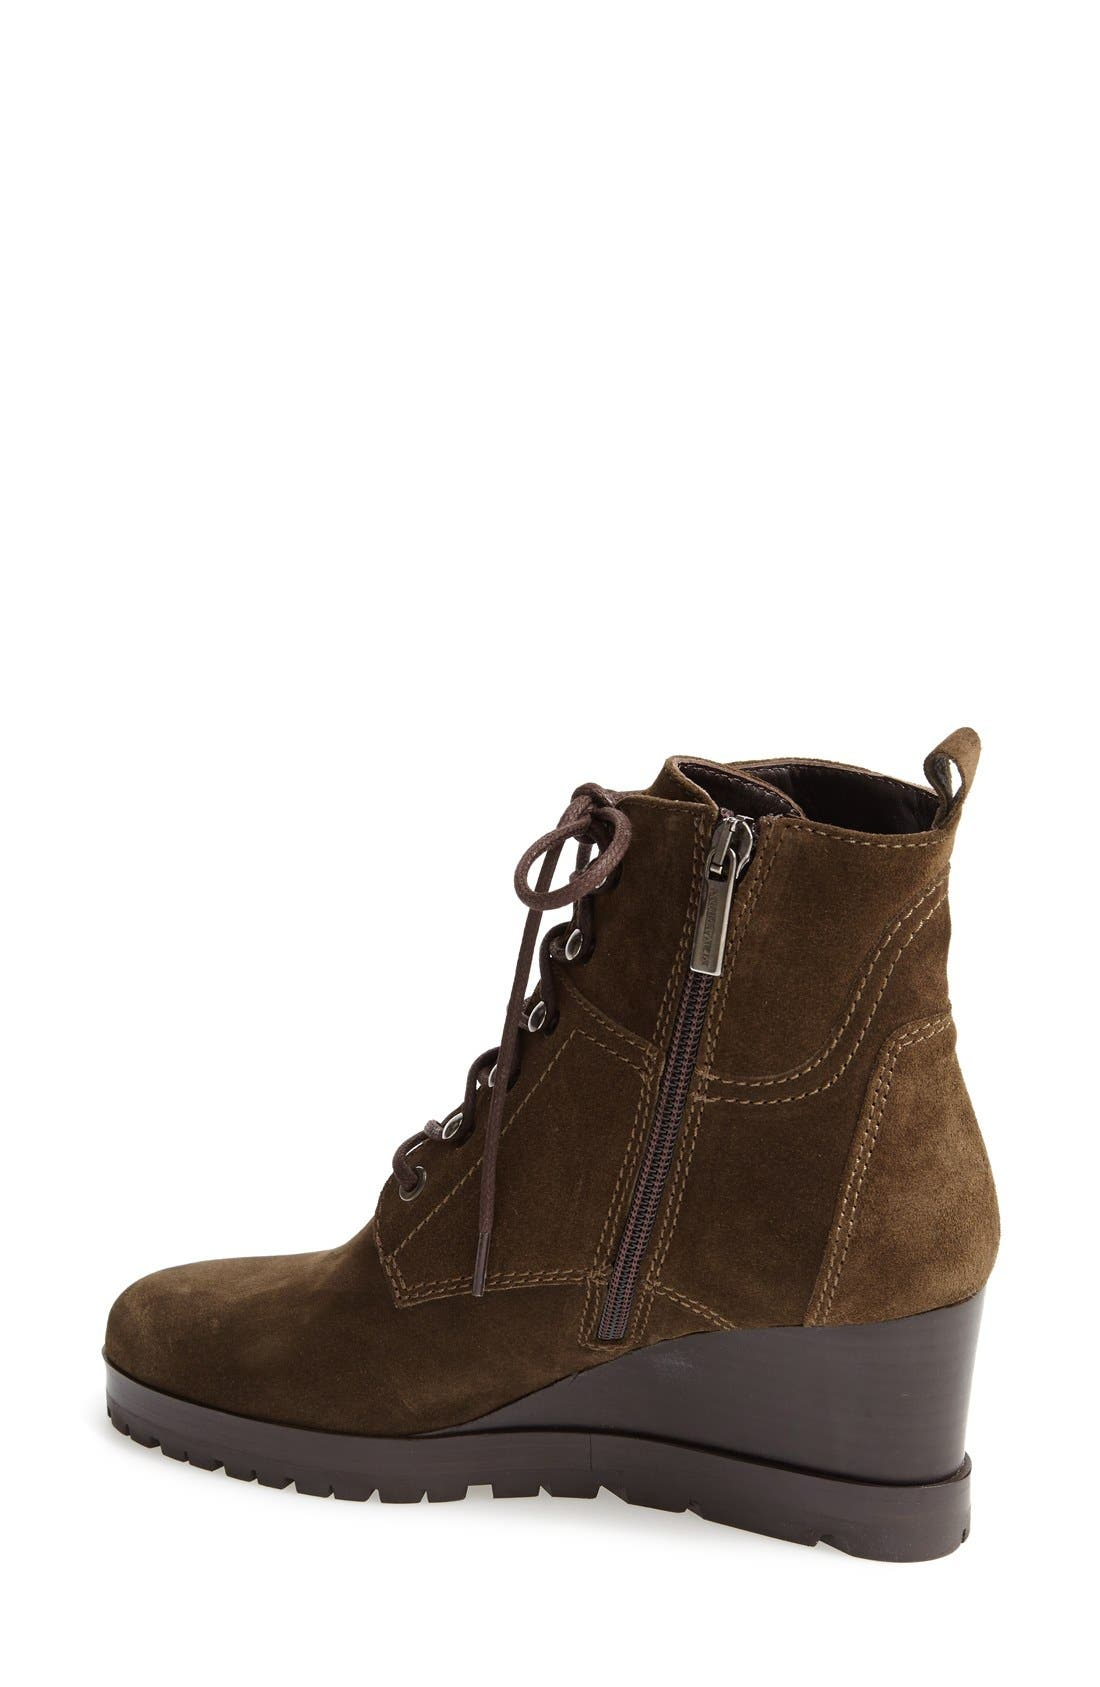 Alternate Image 2  - Aquatalia by Marvin K. 'Chance' Suede Wedge Bootie (Women)